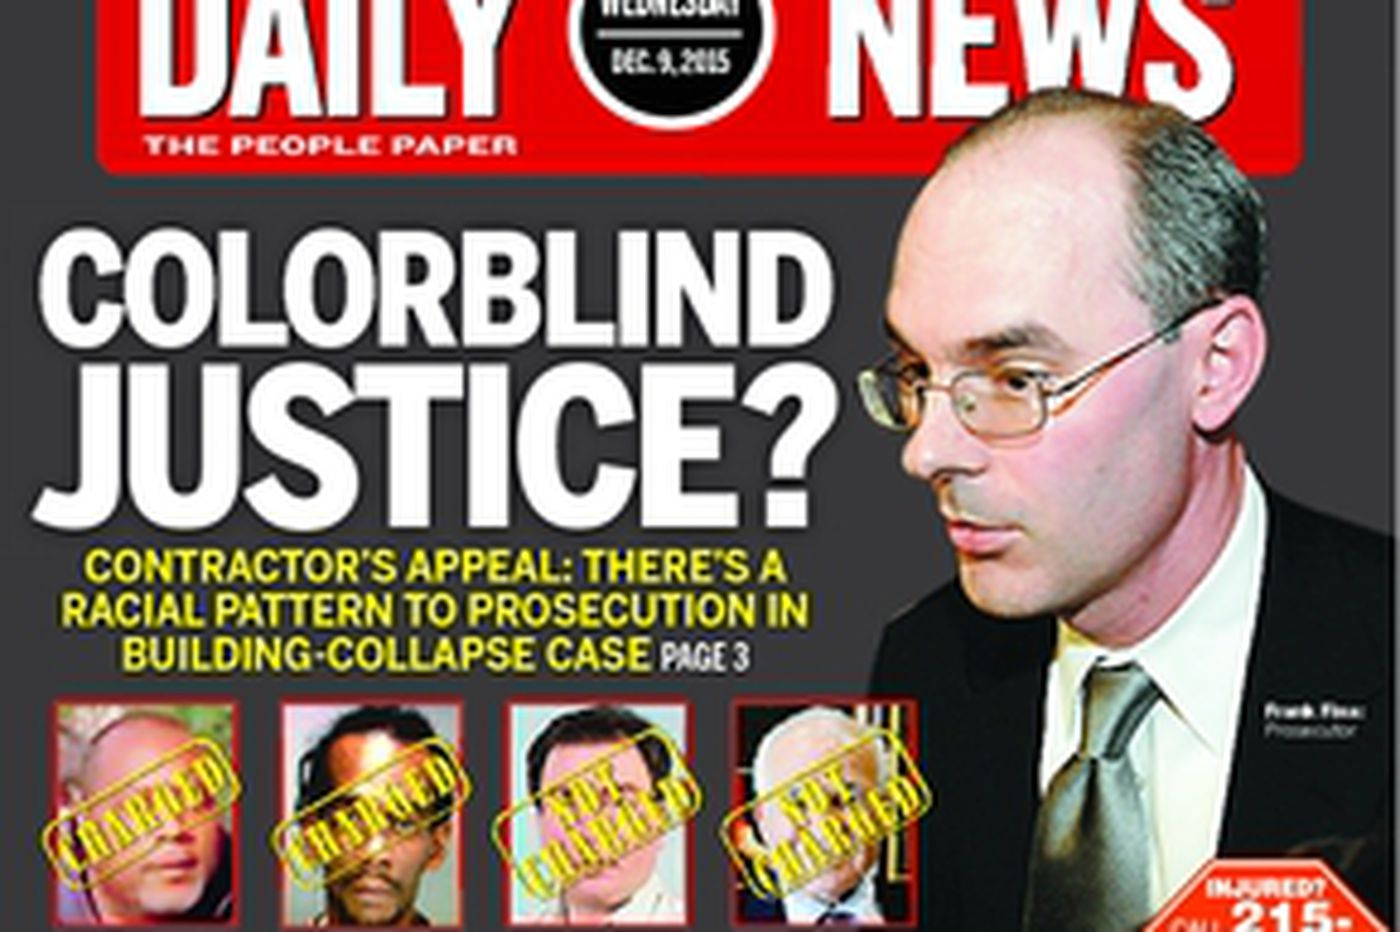 Dailynews Monthly Covers 12/09/15